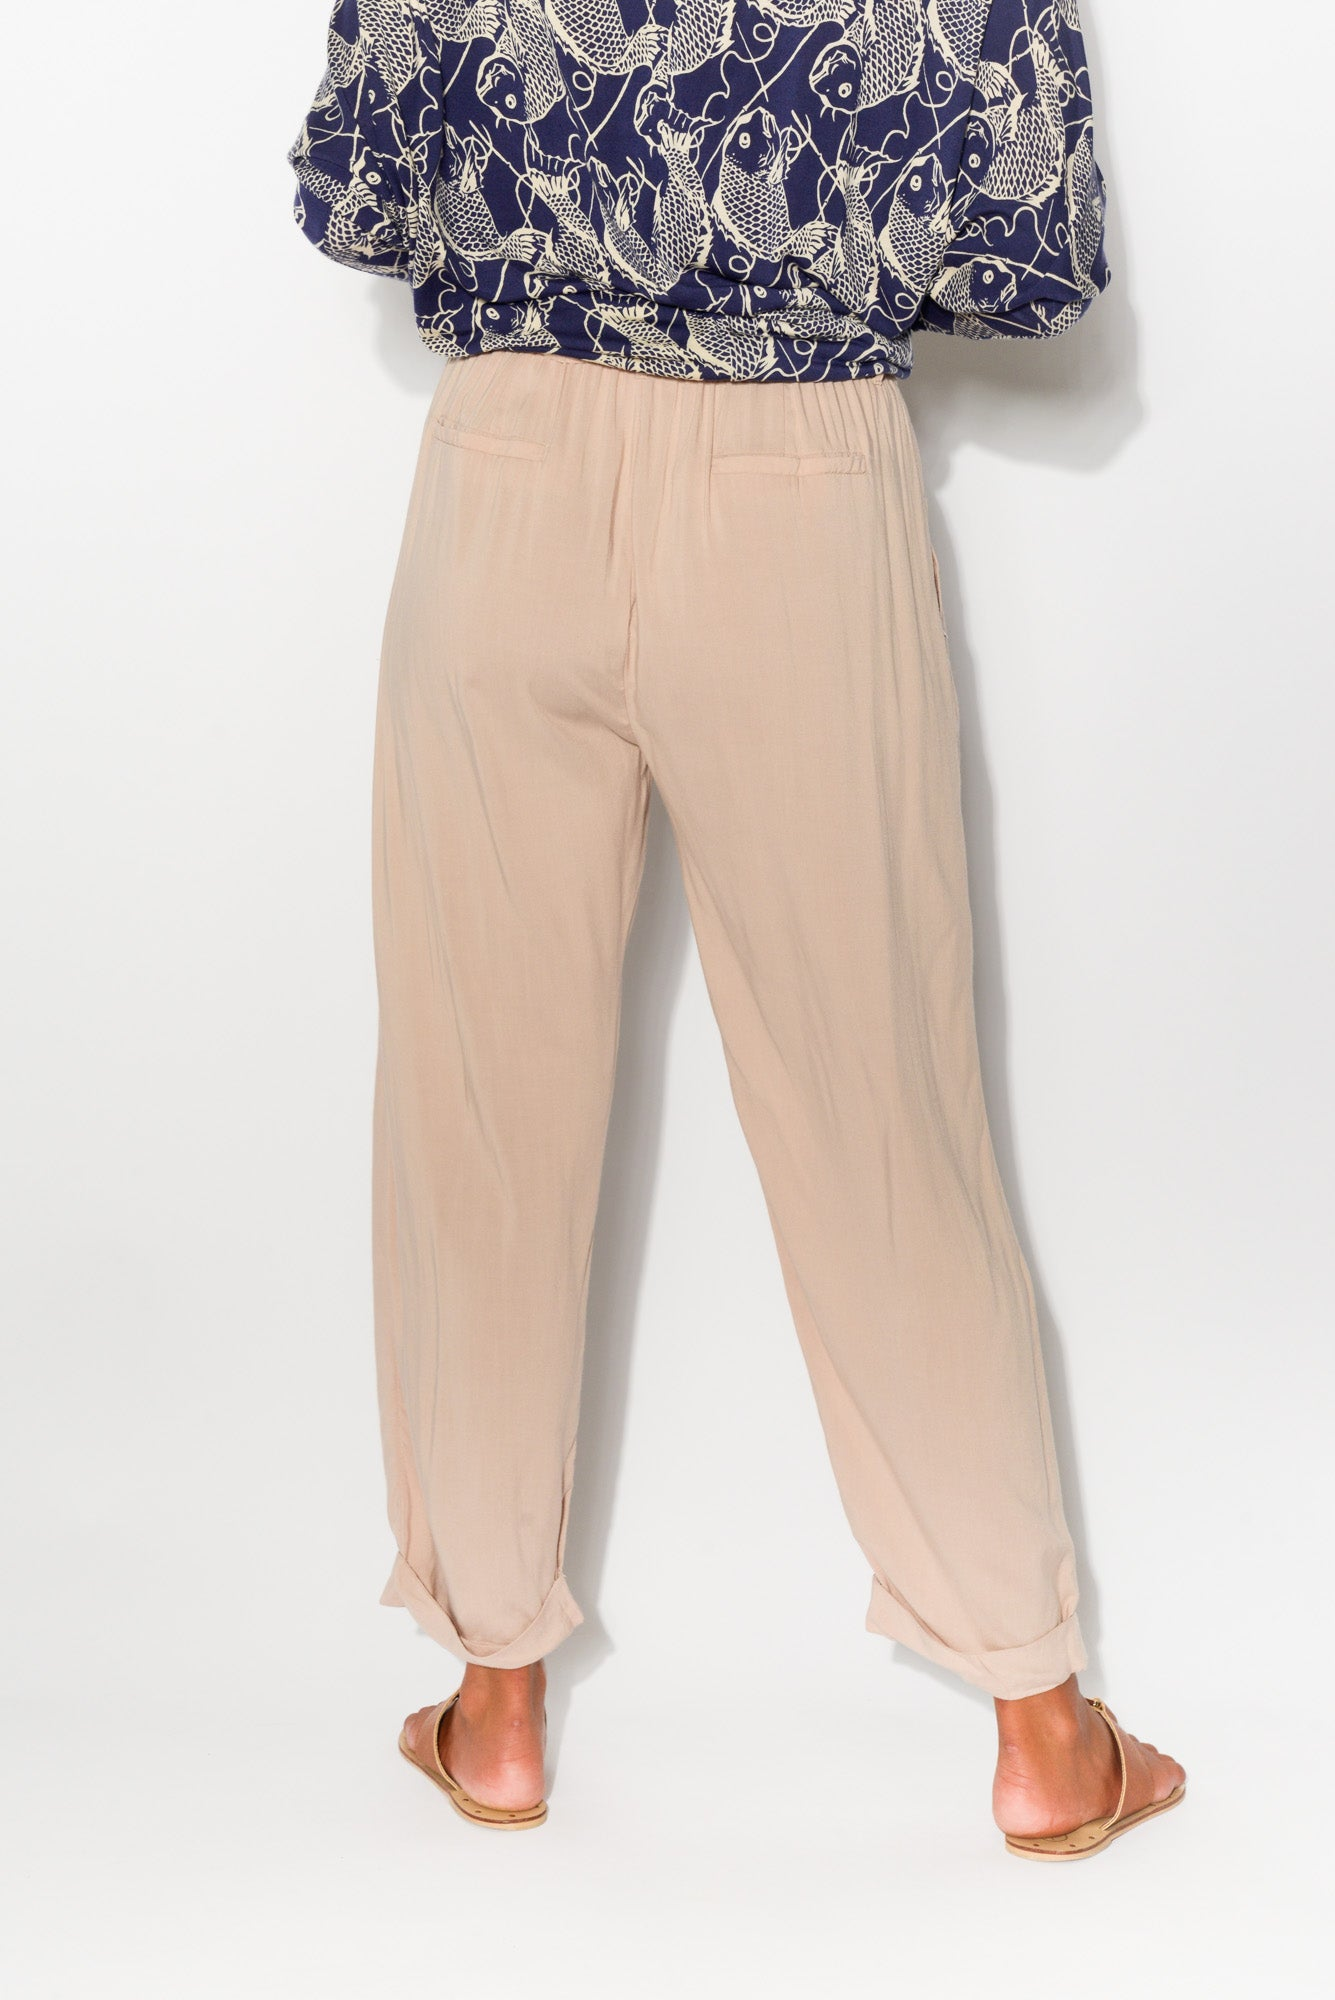 Joanna Blush Straight Pant - Blue Bungalow